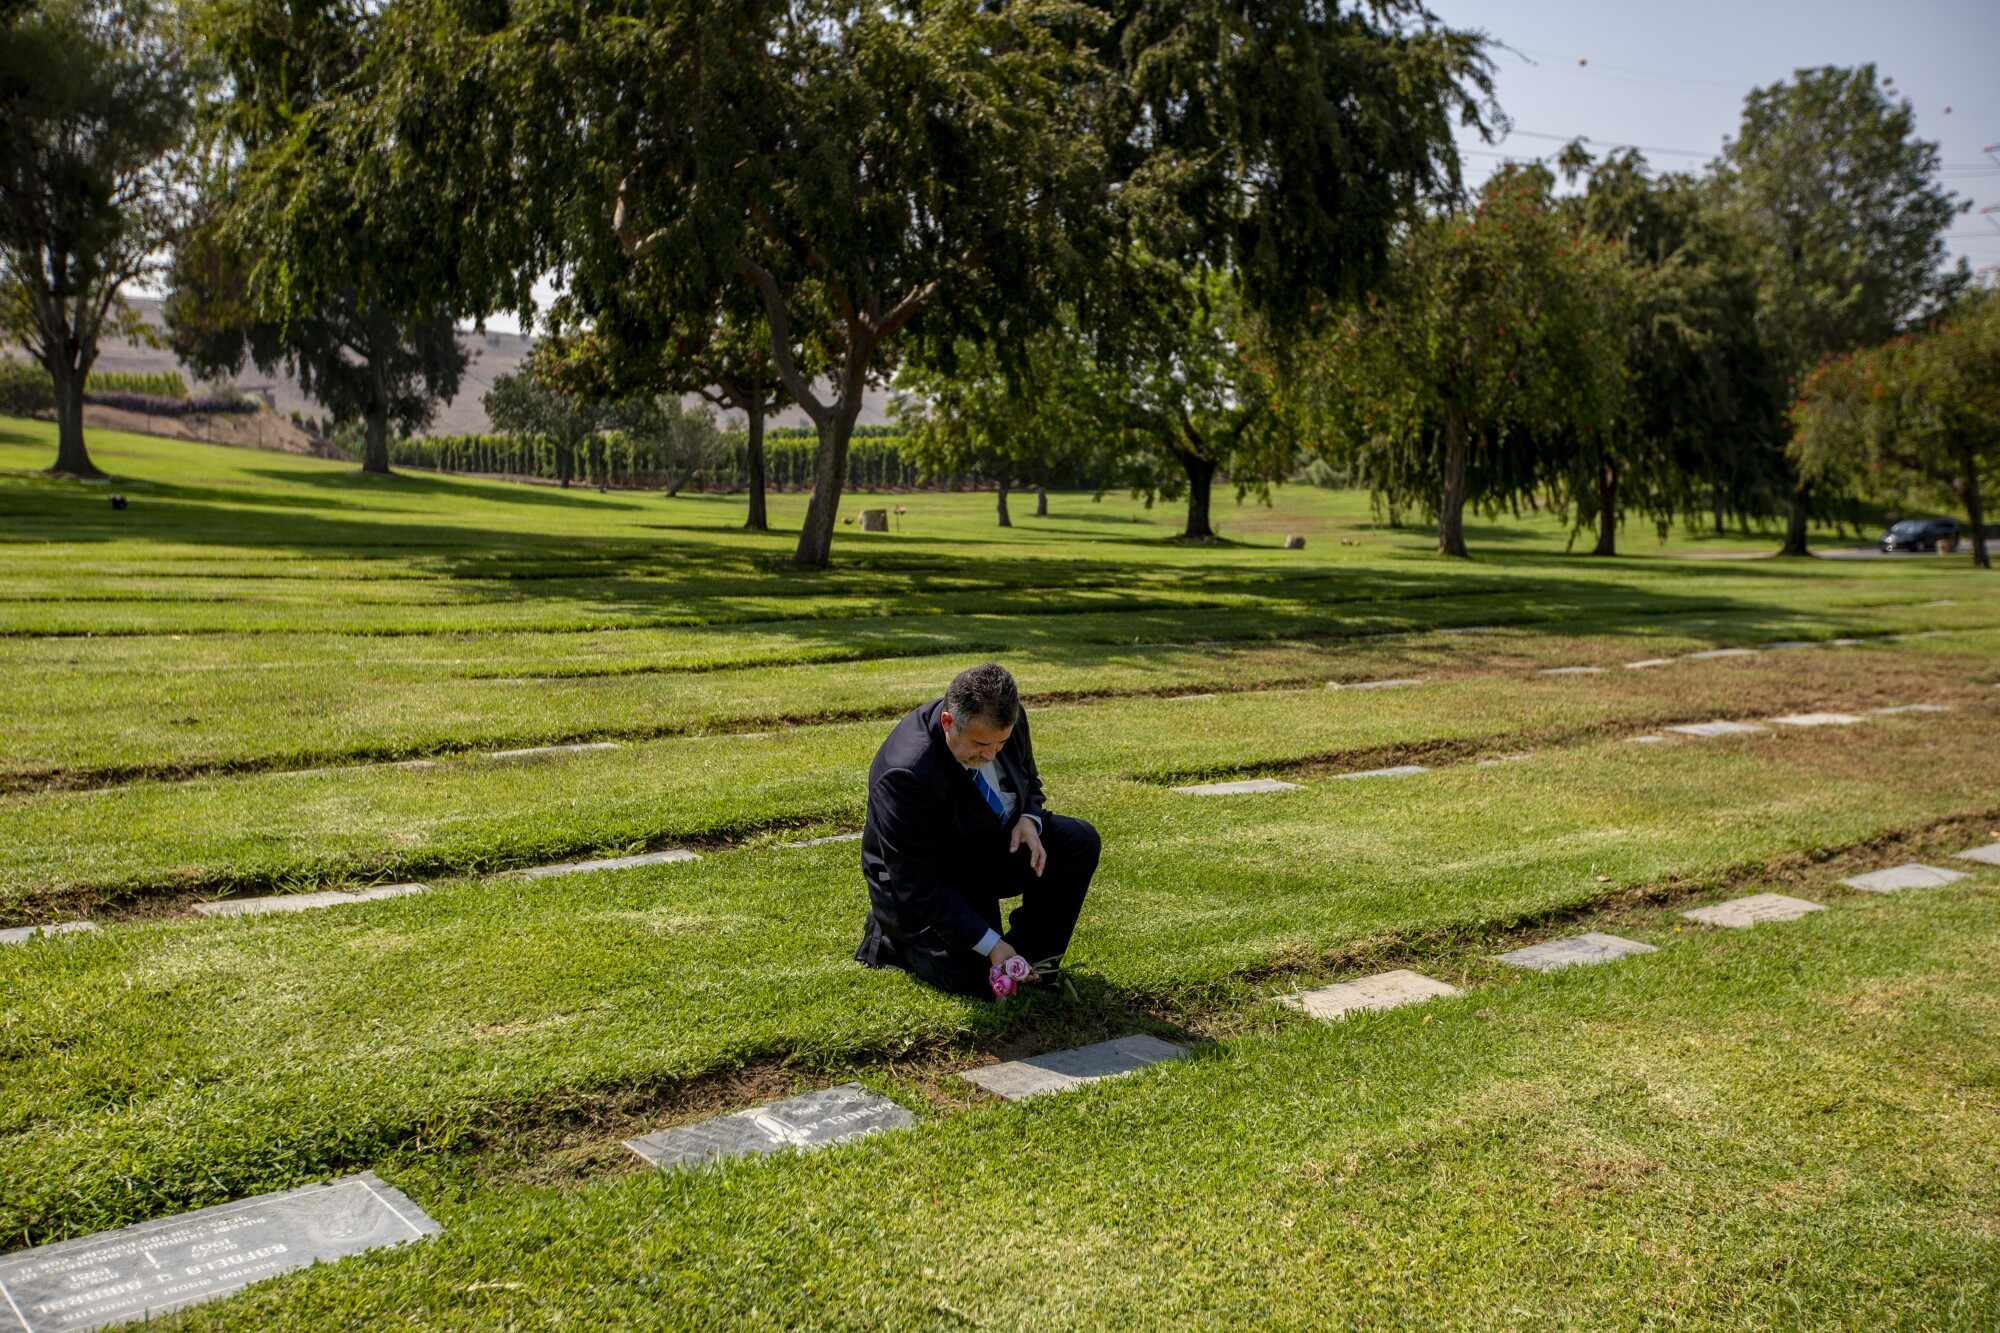 Trino Jimenez visits his brother's grave at Resurrection Cemetery in Rosemead.